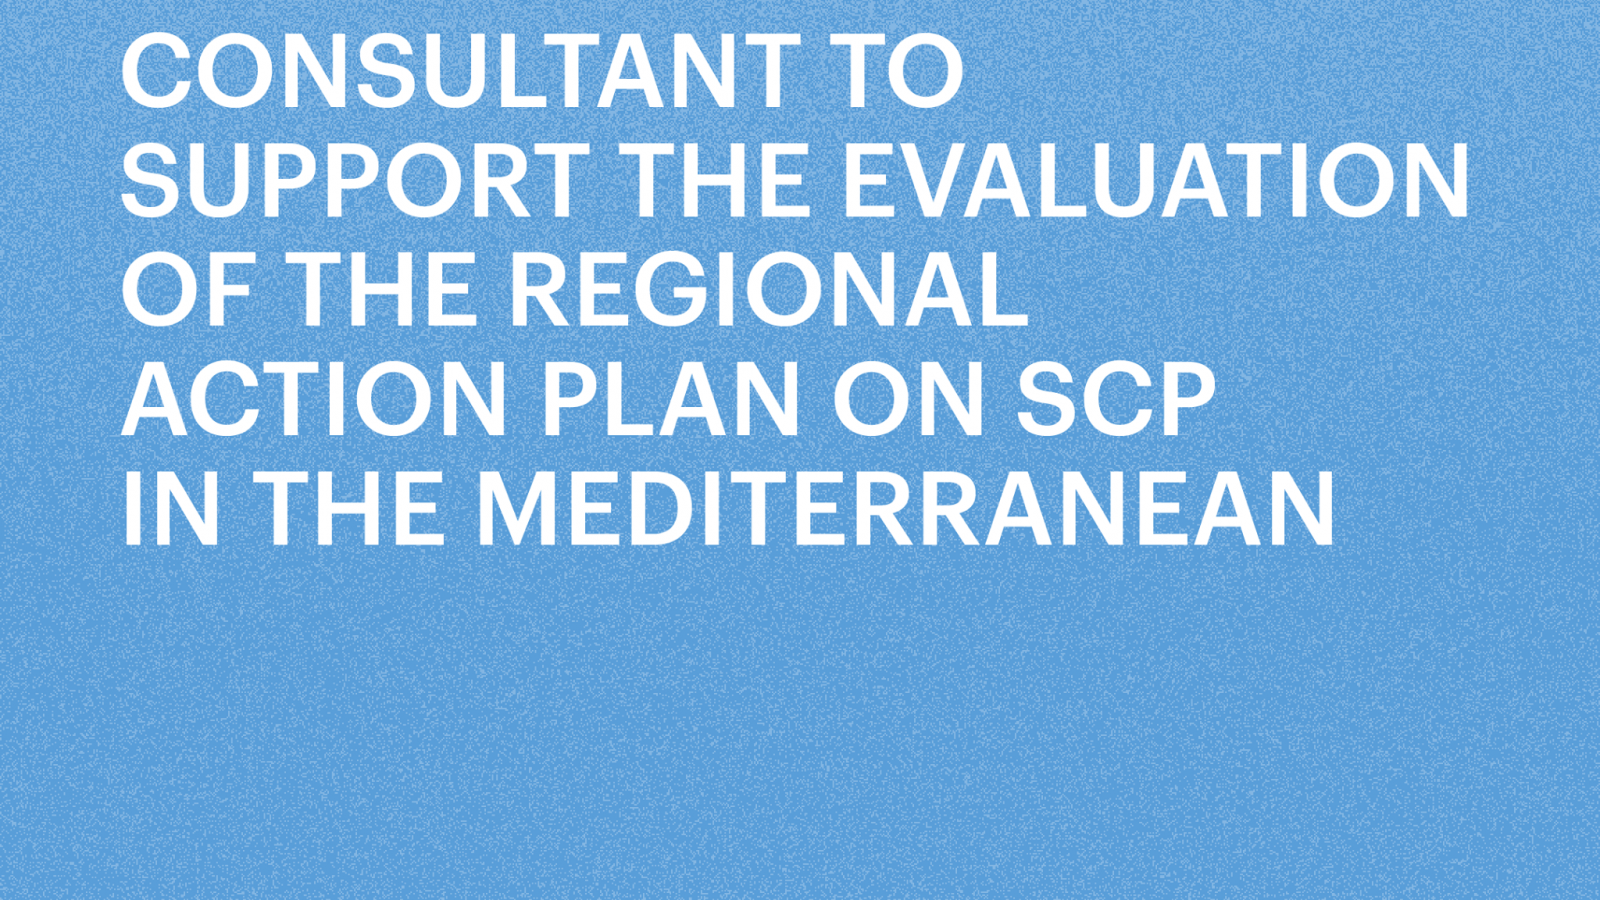 The Regional Activity Centre for Sustainable Consumption and Production (SCP/RAC) calls for consultant to support the mid-term evaluation of the Regional SCP Action Plan in the Mediterranean